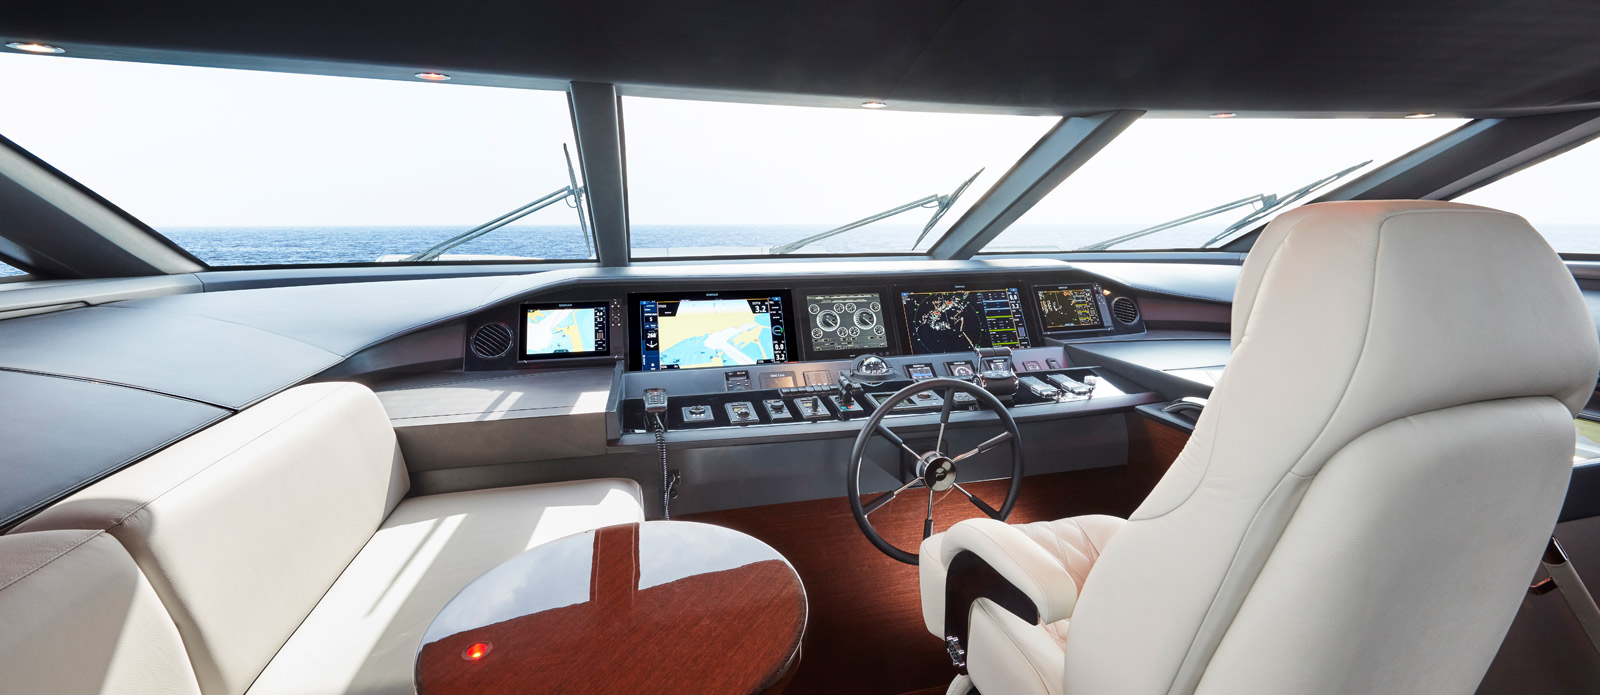 Princess 30 Metre Yacht Bandazul - Wheel House